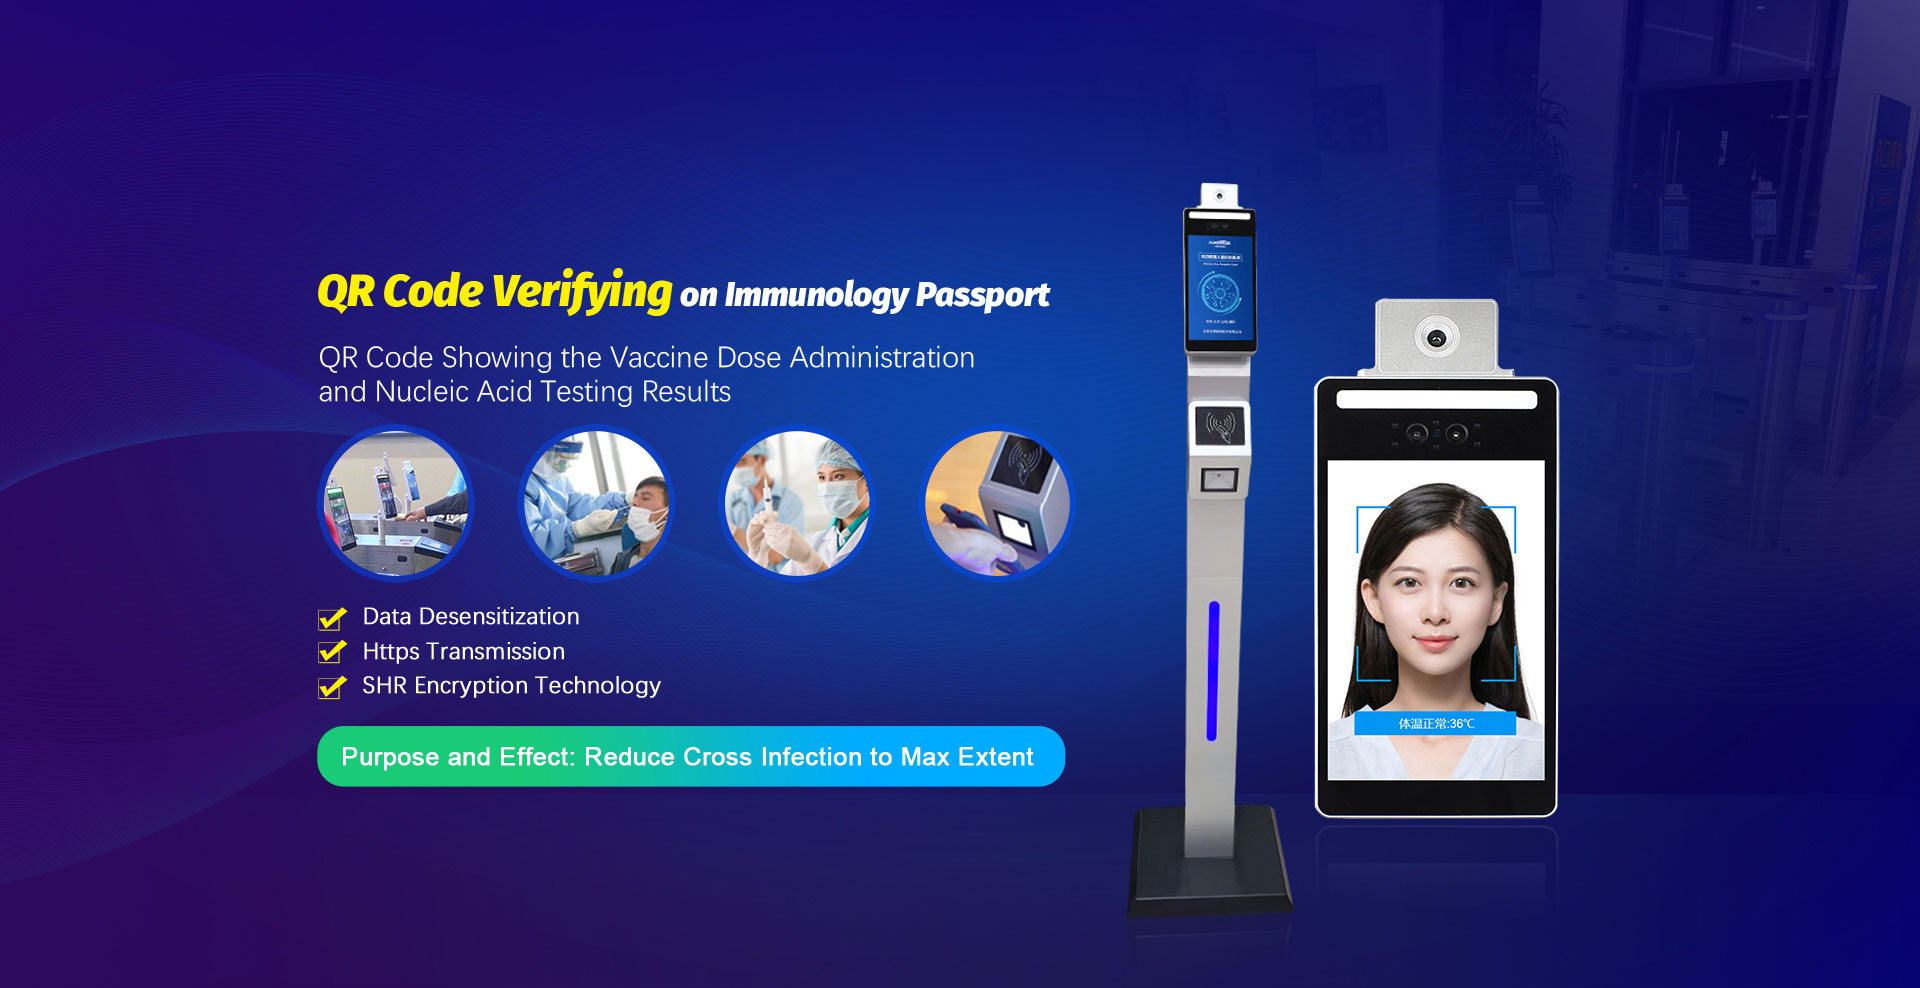 QR Code Verifying on Immunology Passport with Face Recognition Terminal